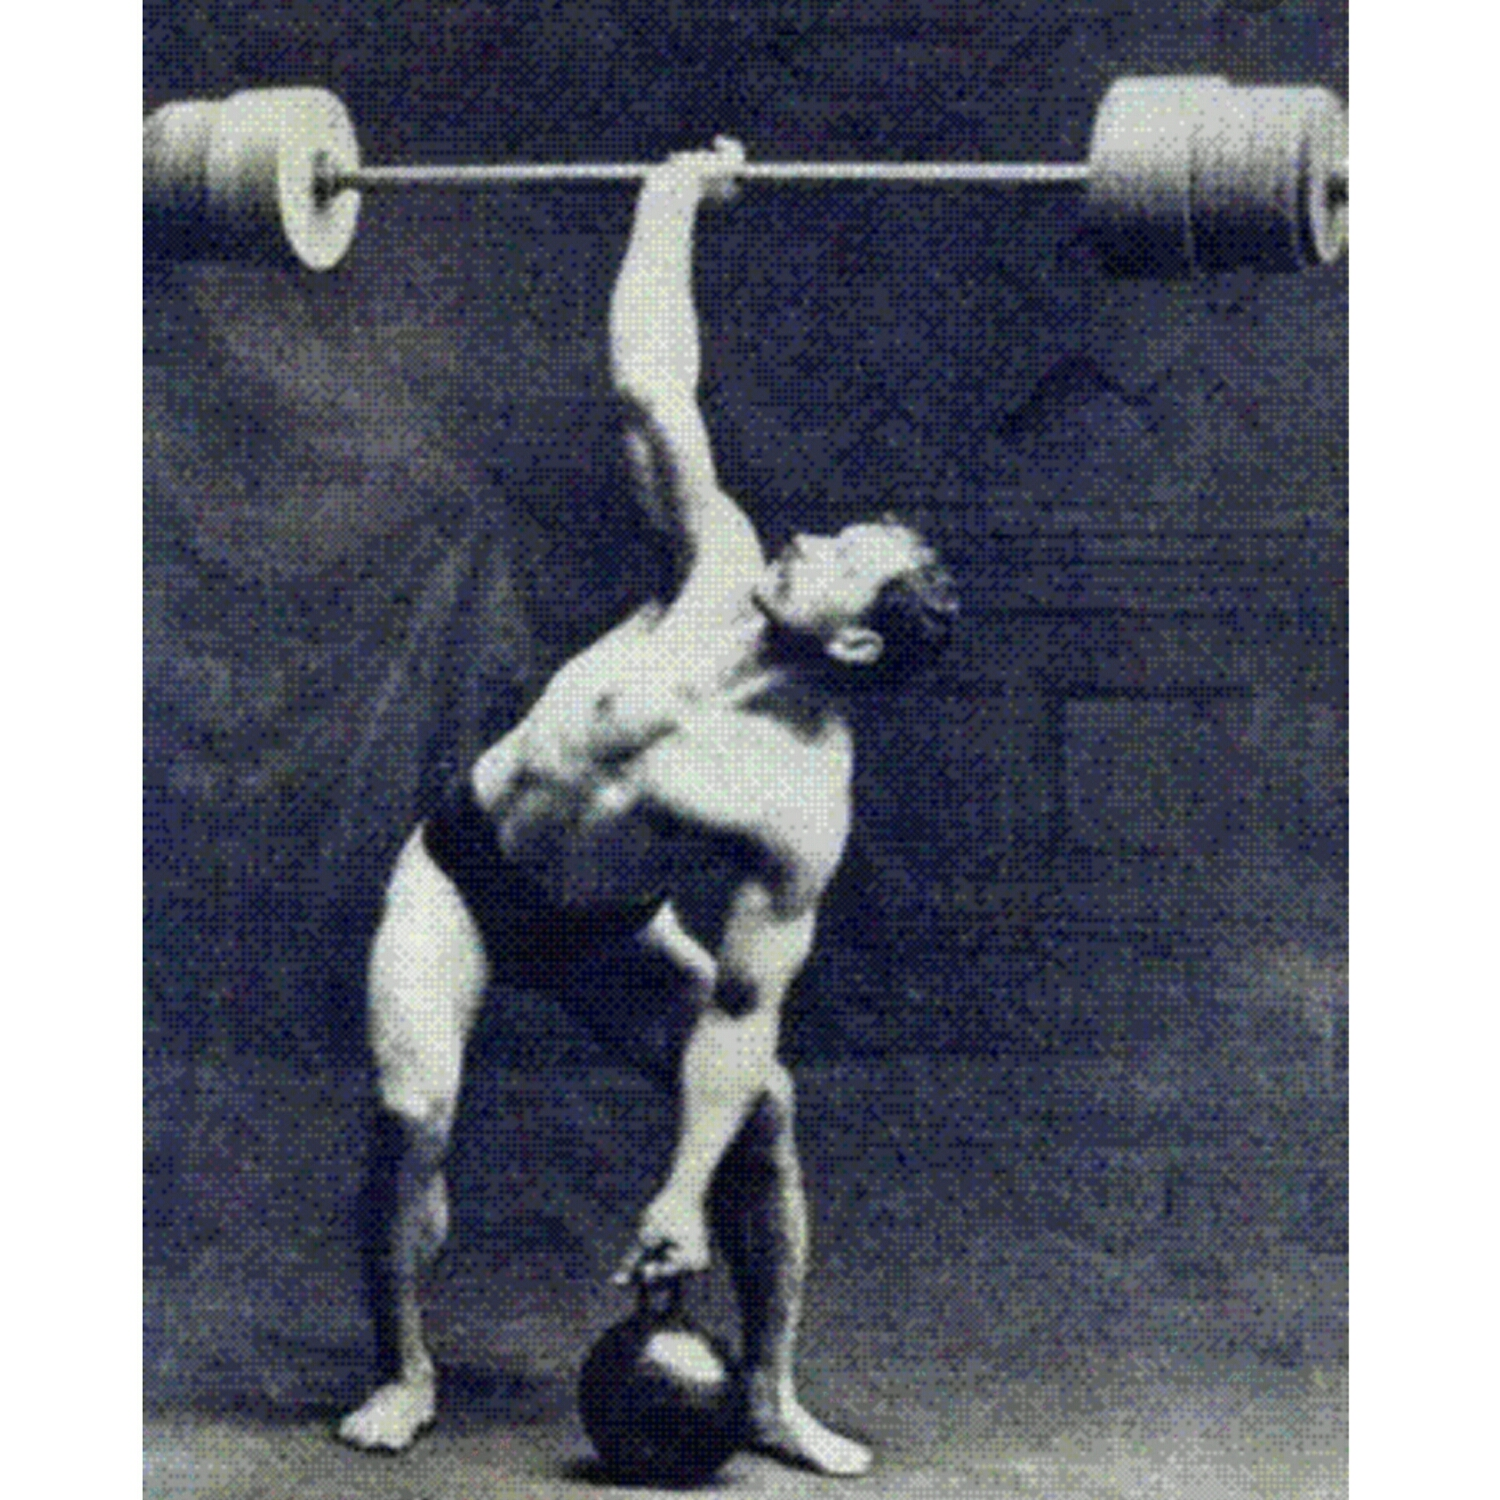 The one armed Snatch was an actual Olympic Lift in early 1900's.